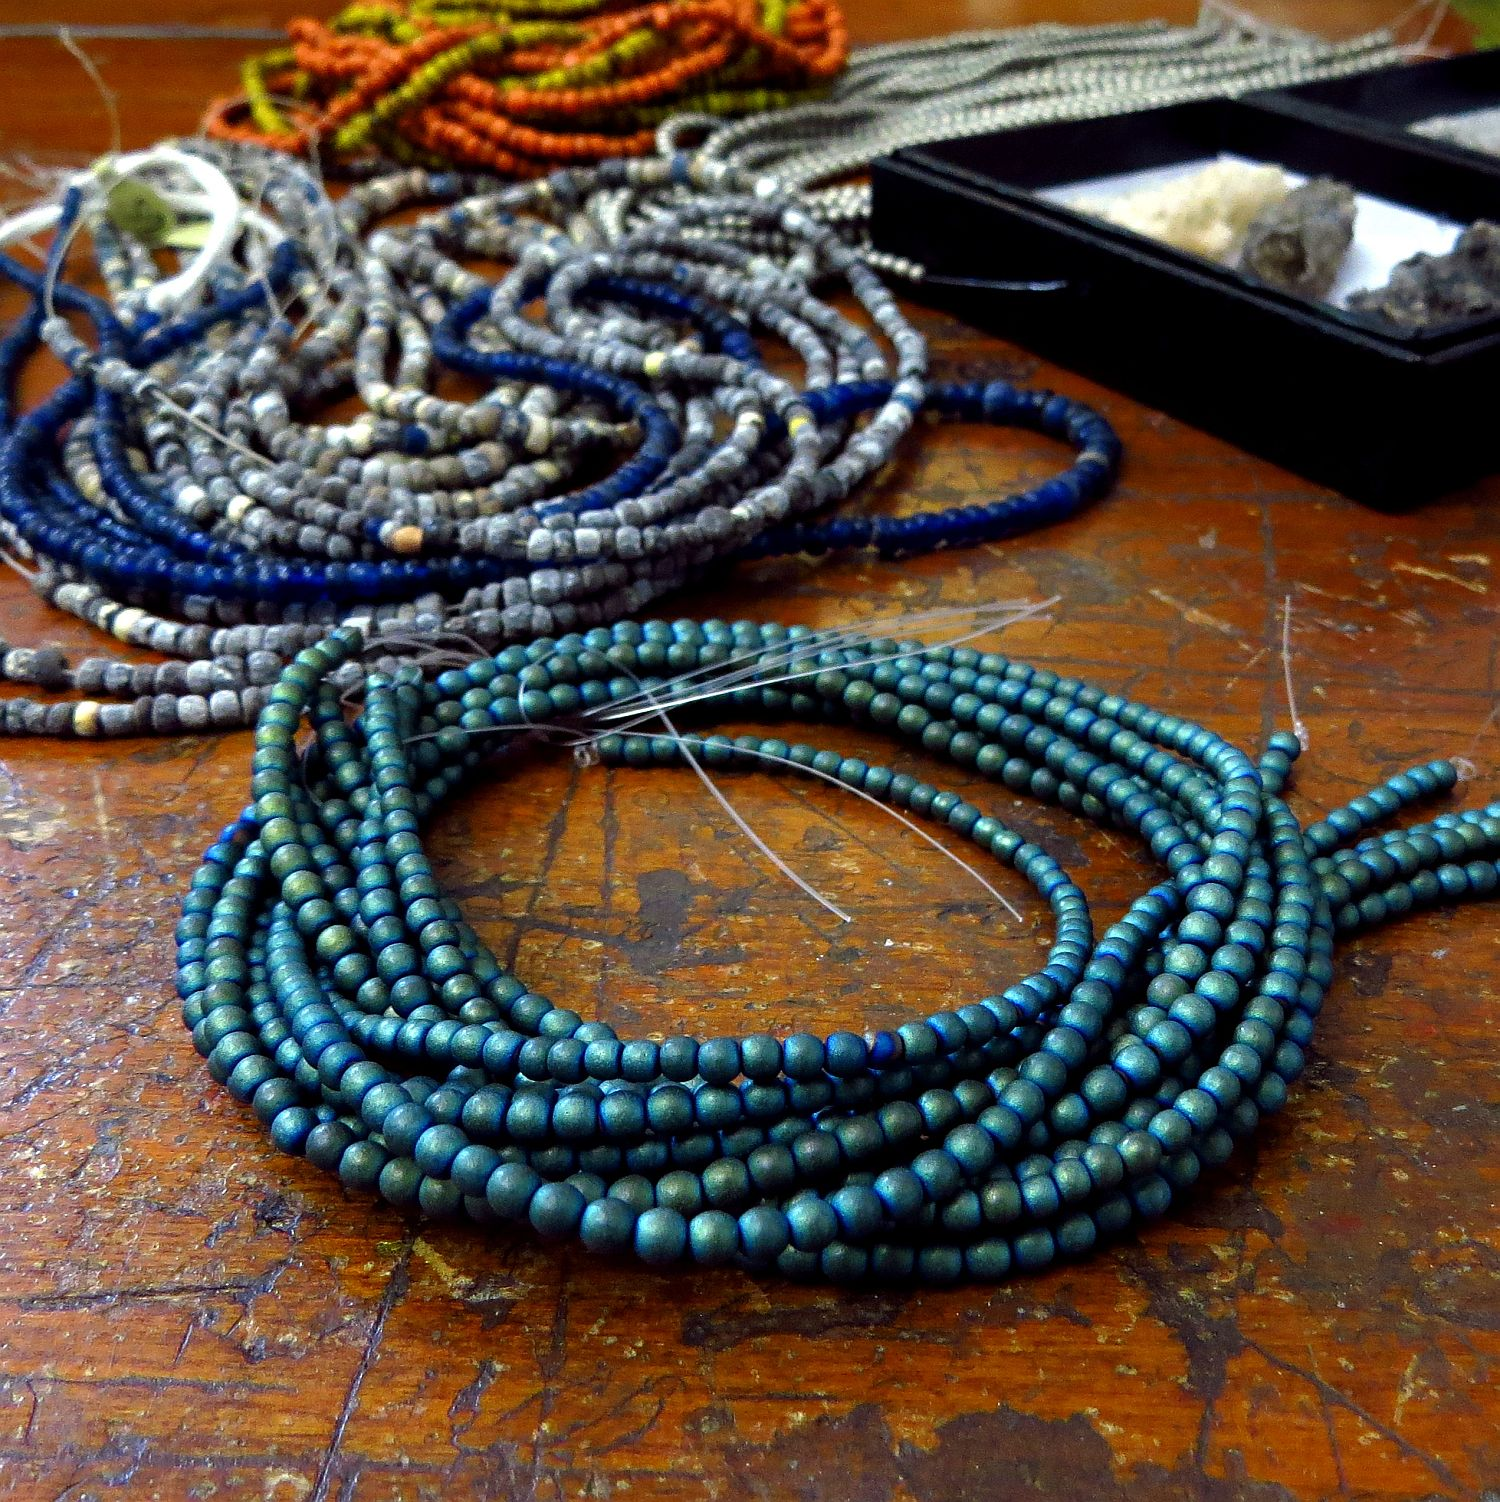 these have the coloring of azurite ... turquoise to blue